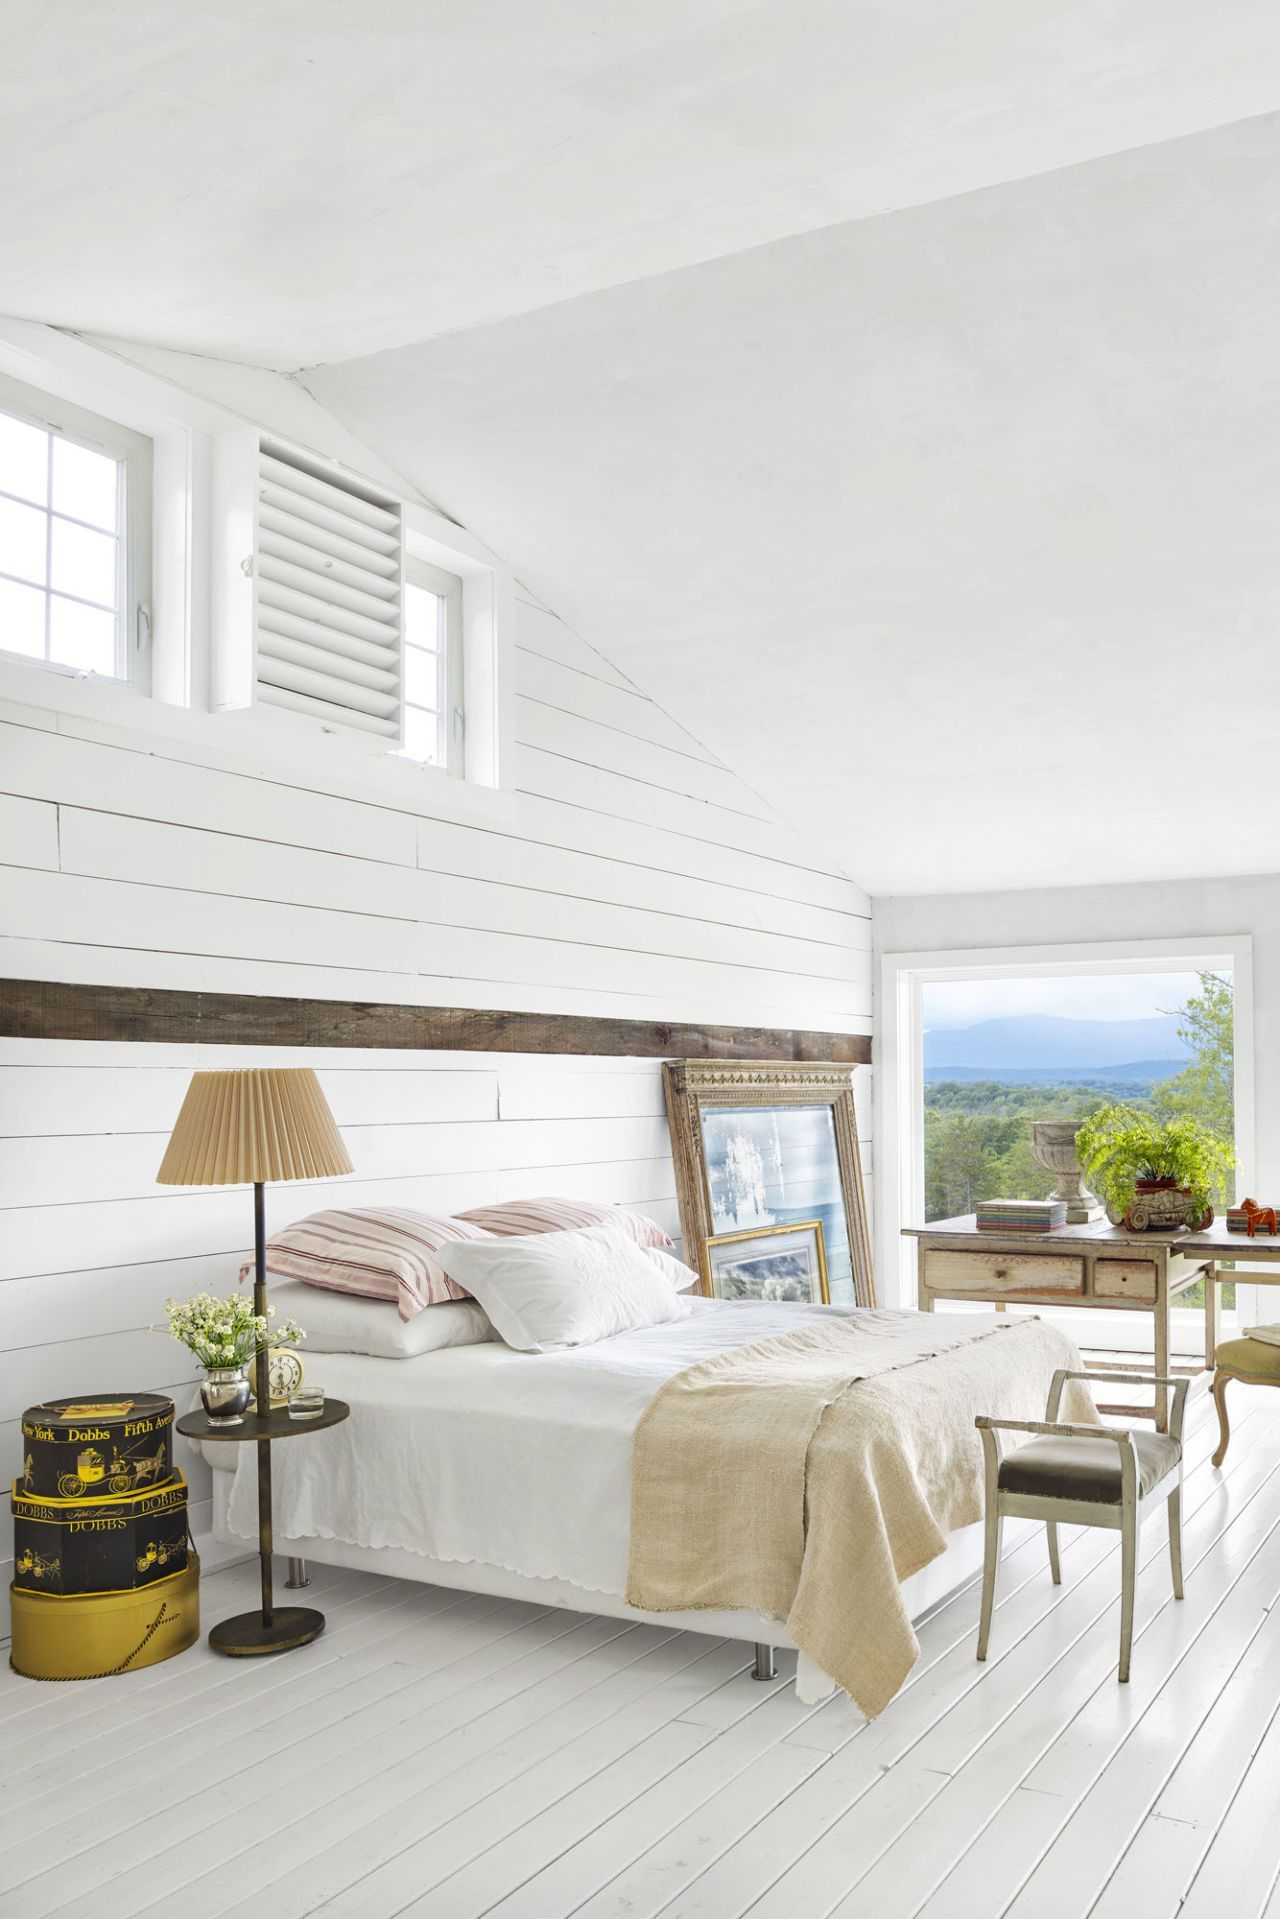 5 Best White Bedroom Ideas - How to Decorate a White Bedroom